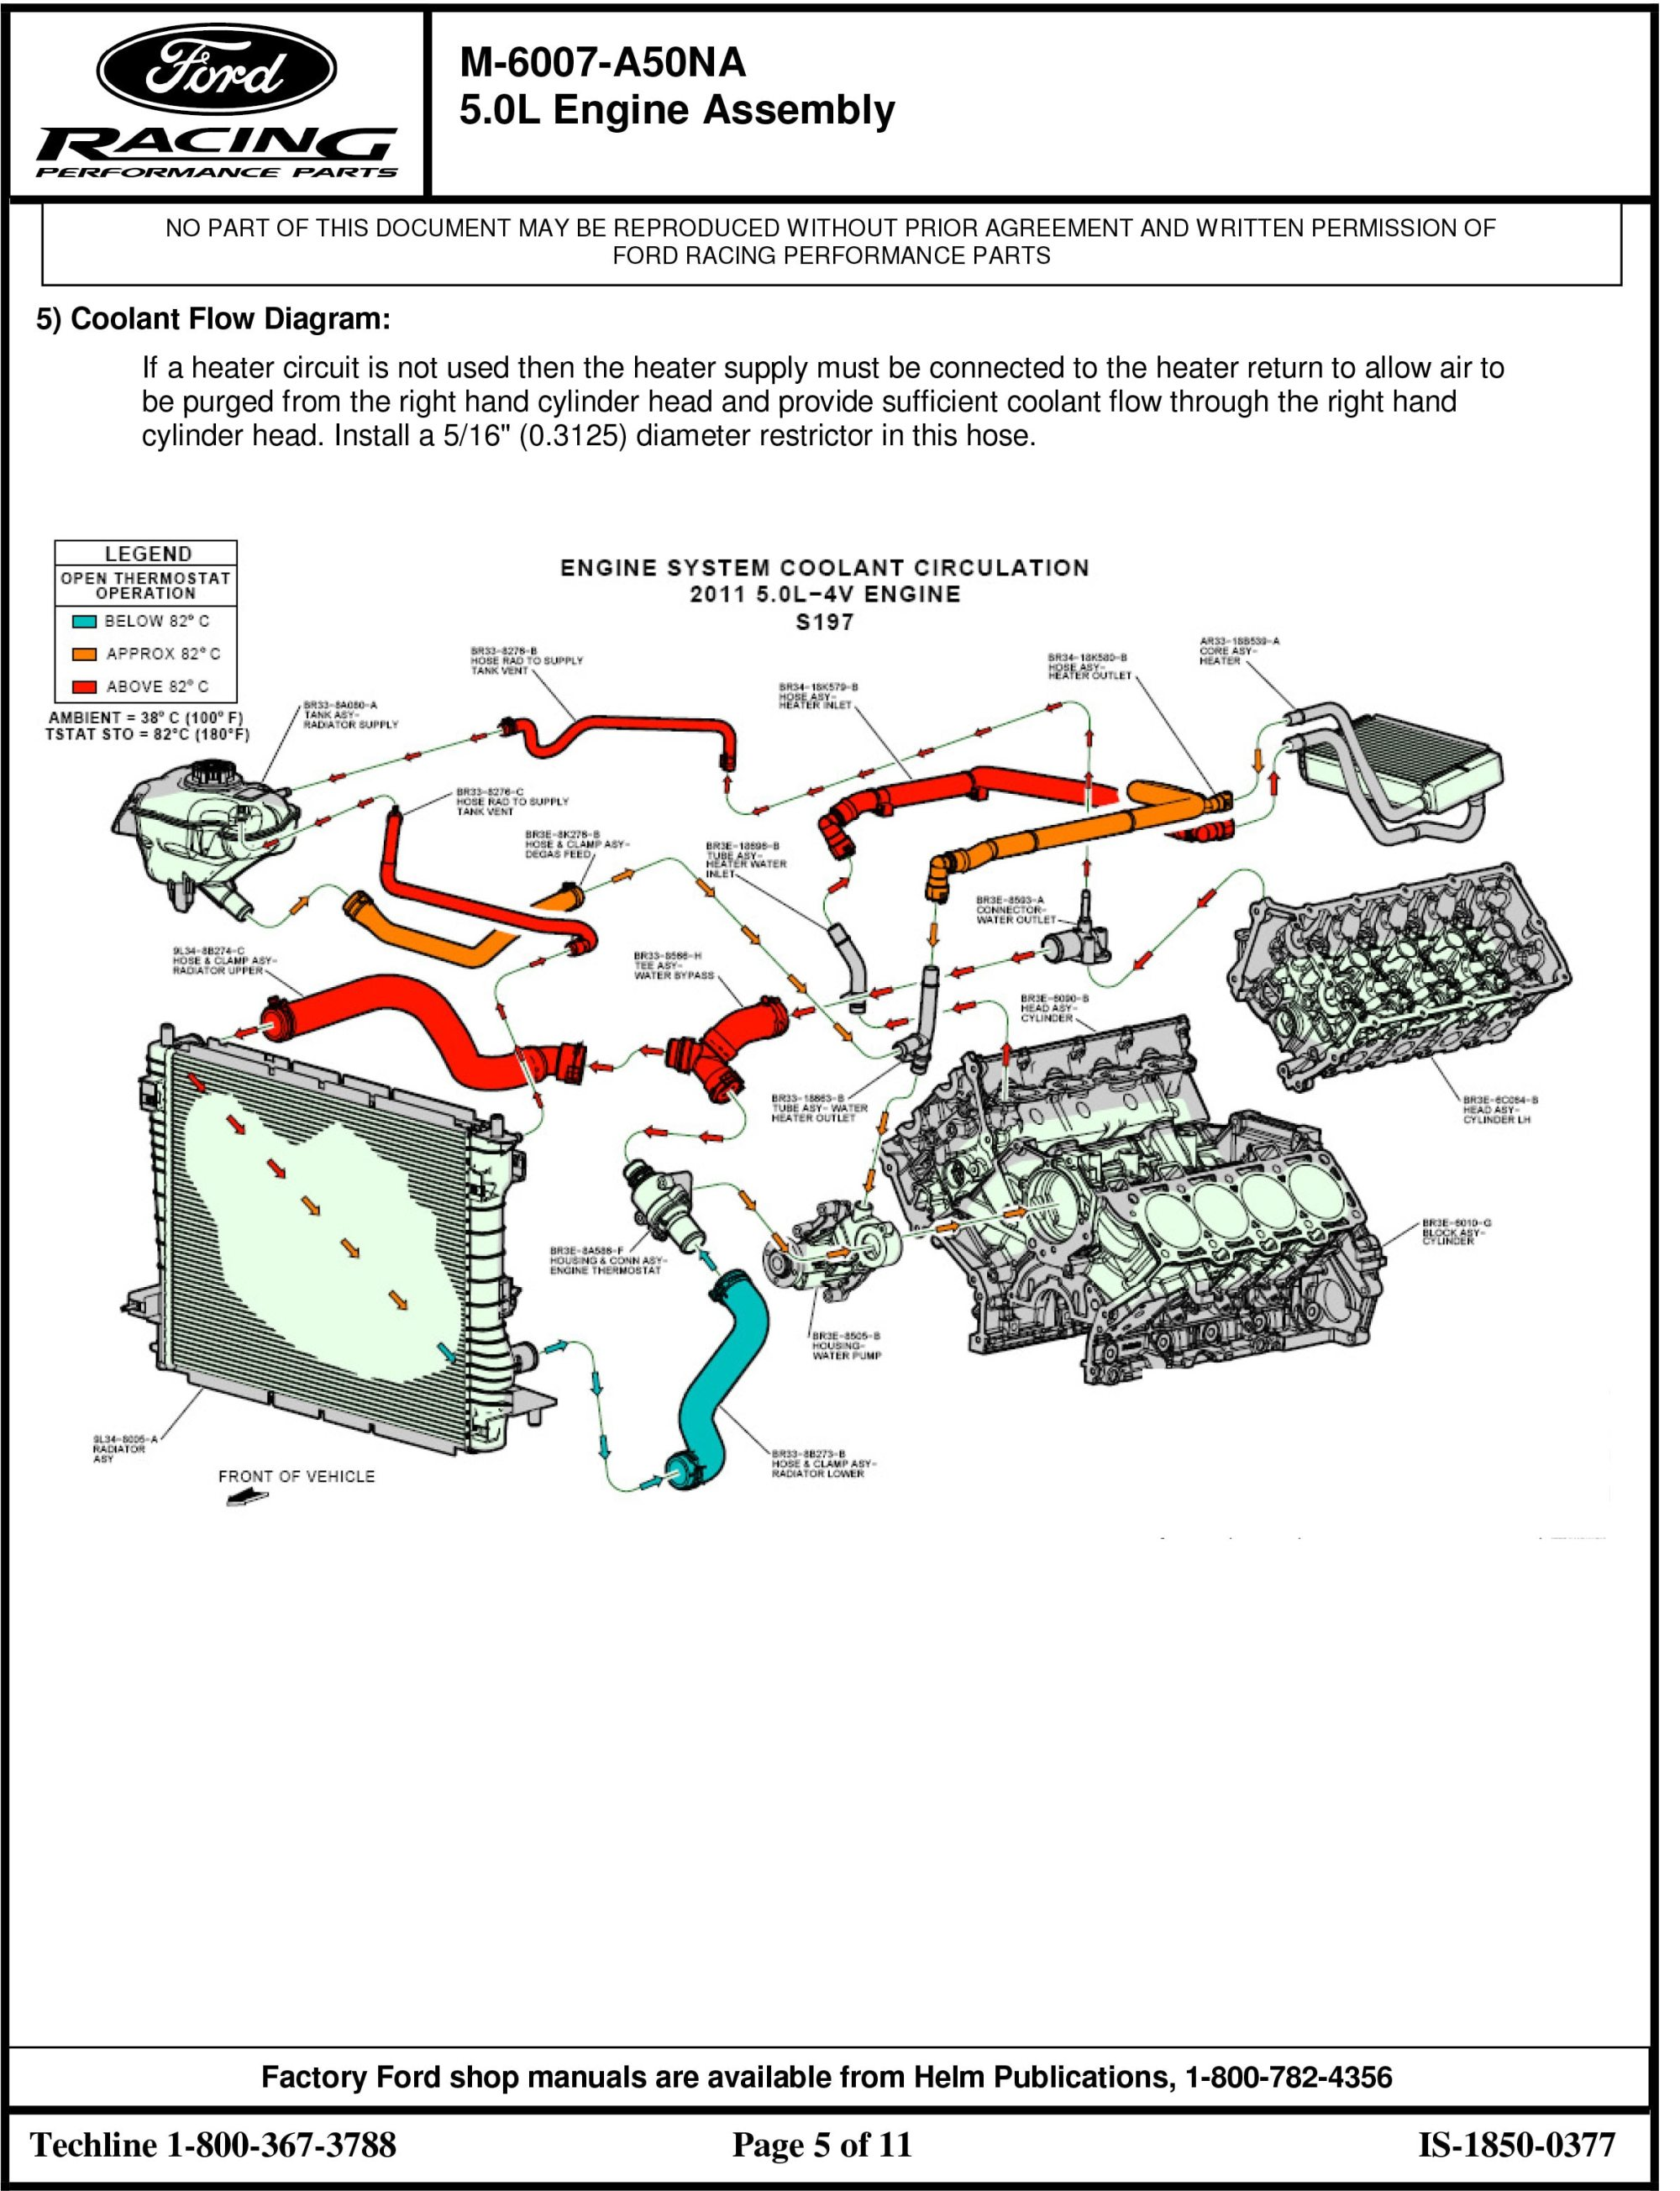 hight resolution of 5 0 engine coolant diagram wiring diagram yer ford mustang cooling system diagrams on engine coolant flow diagram